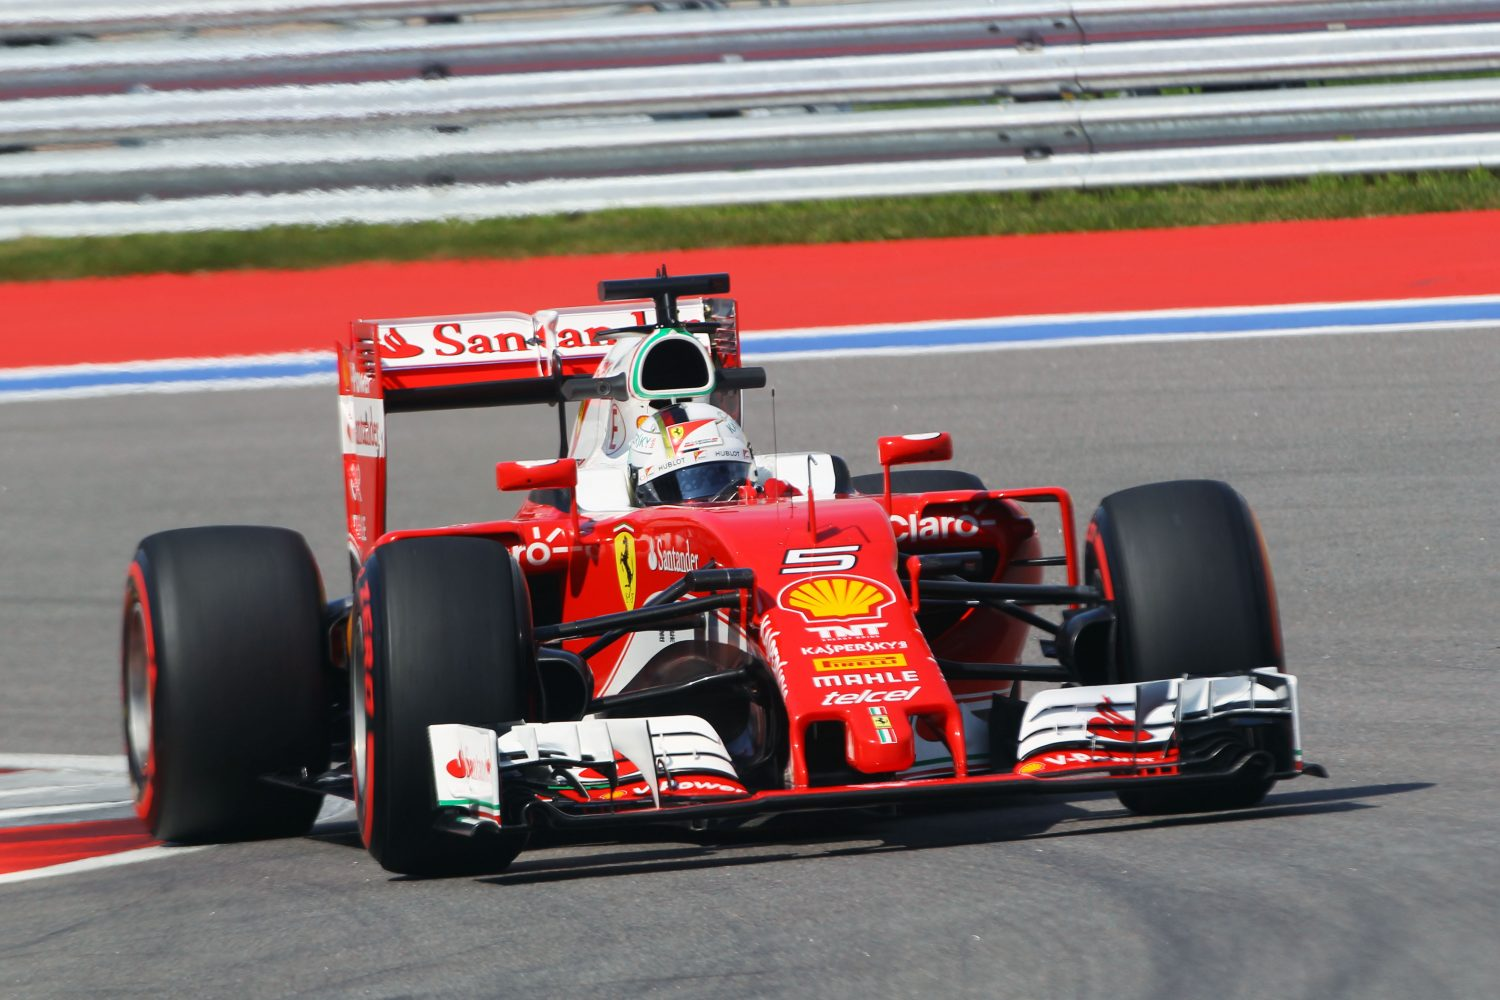 Wallpapers Russian Grand Prix of 2016   Marco\'s Formula 1 Page ...